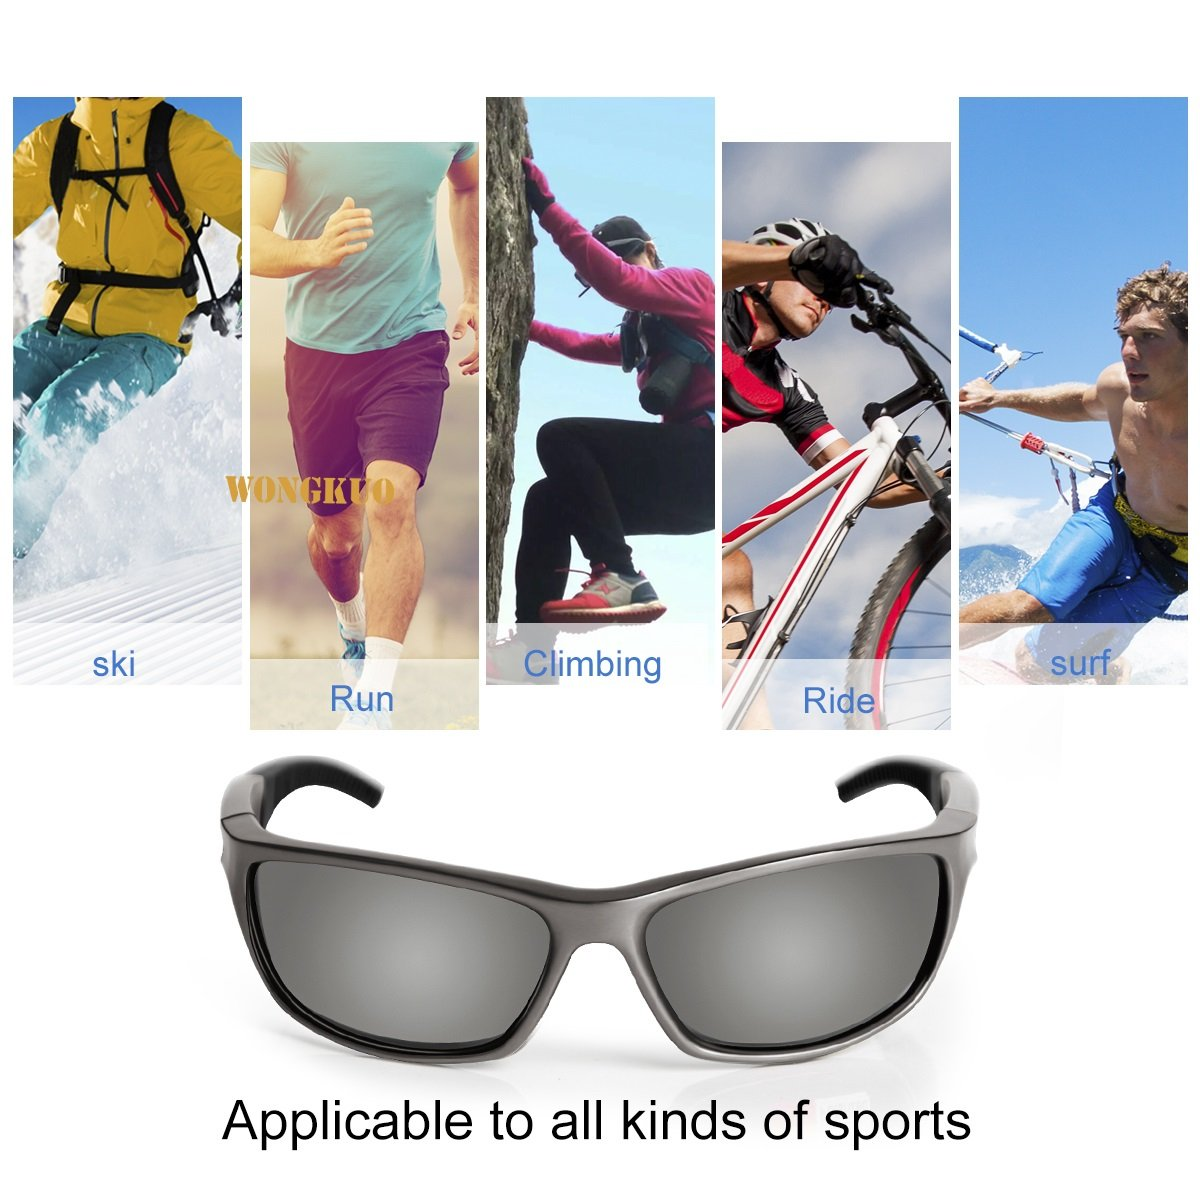 WONGKUO Sports Sunglasses for Men Women Polarized Glasses UV Protection TR90 Frame